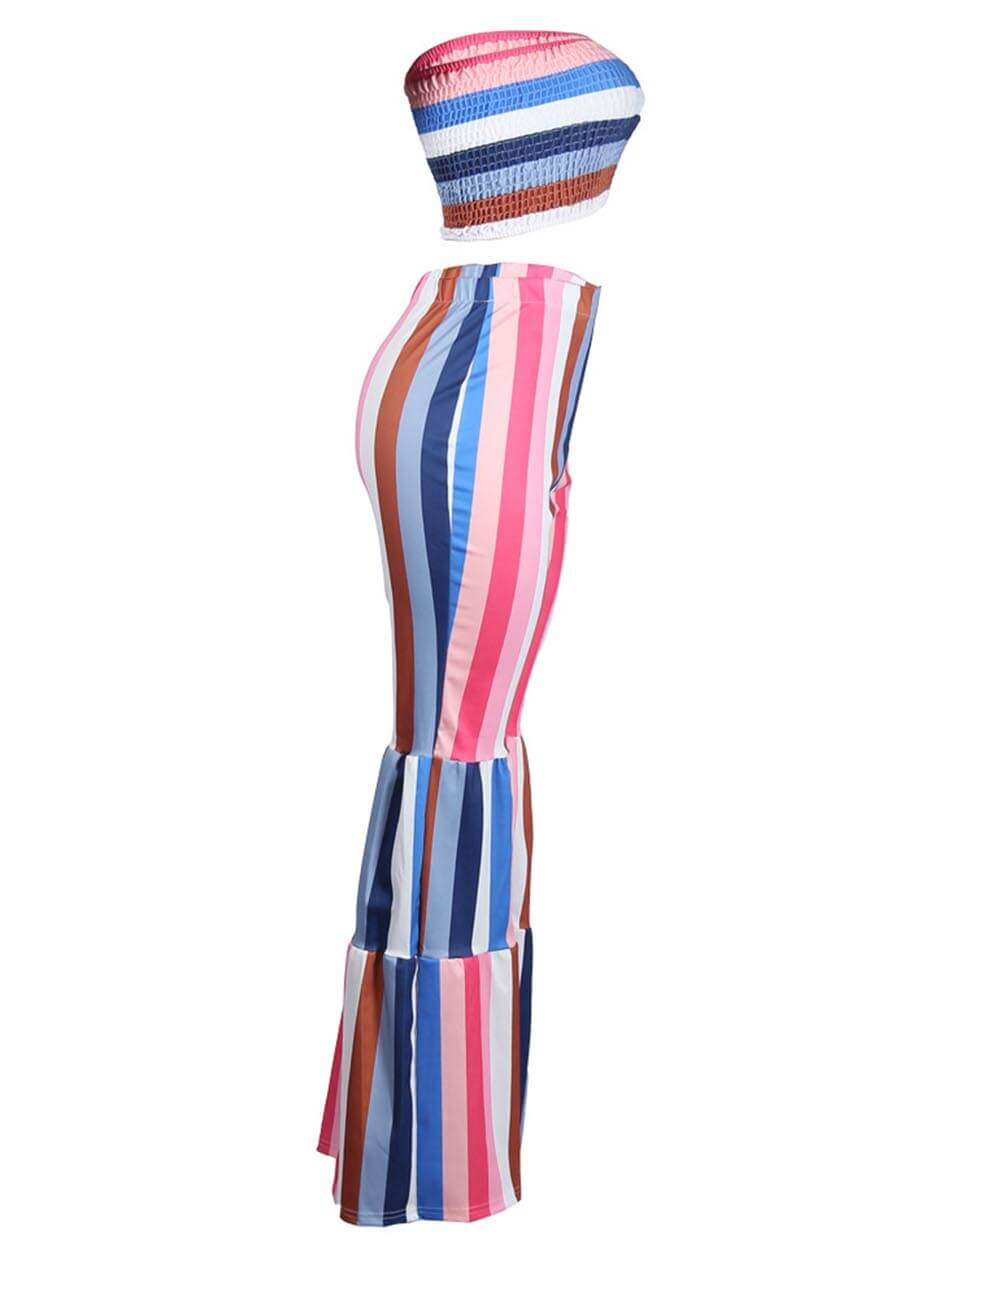 Women's Rainbow Striped Strapless Jumpsuit Printed Long Romper Tube Crop Top Wide Leg Pants 2 Pieces Outfits Set